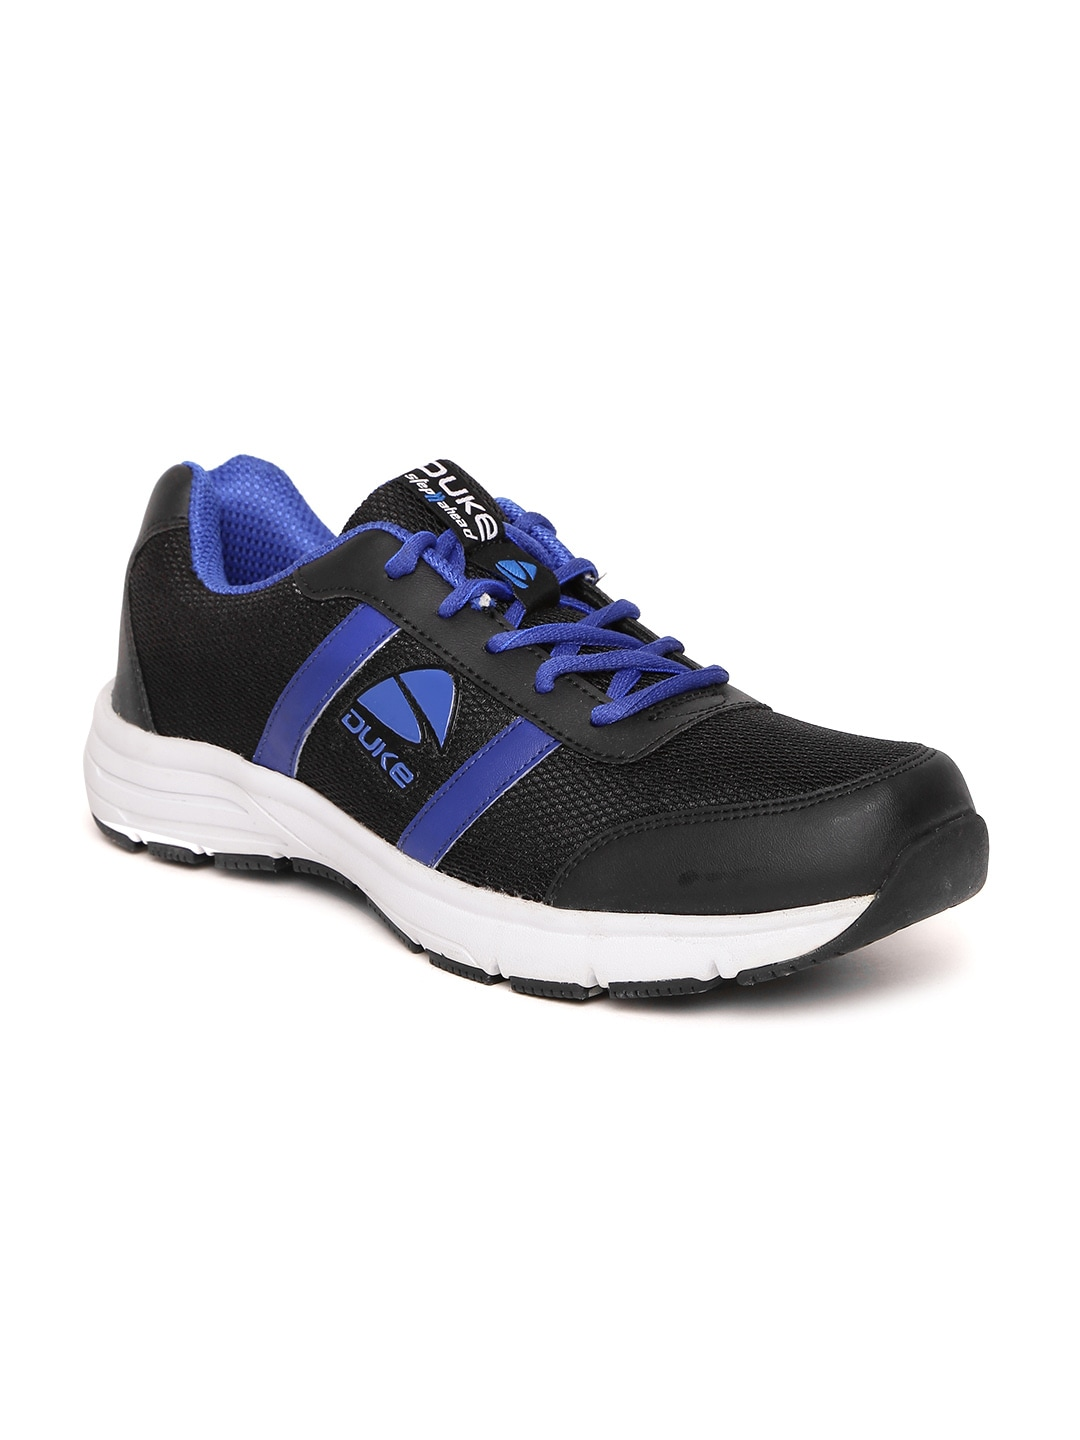 c23b3906d416e4 Men Running Shoes - Buy Men Running Shoes Online in India